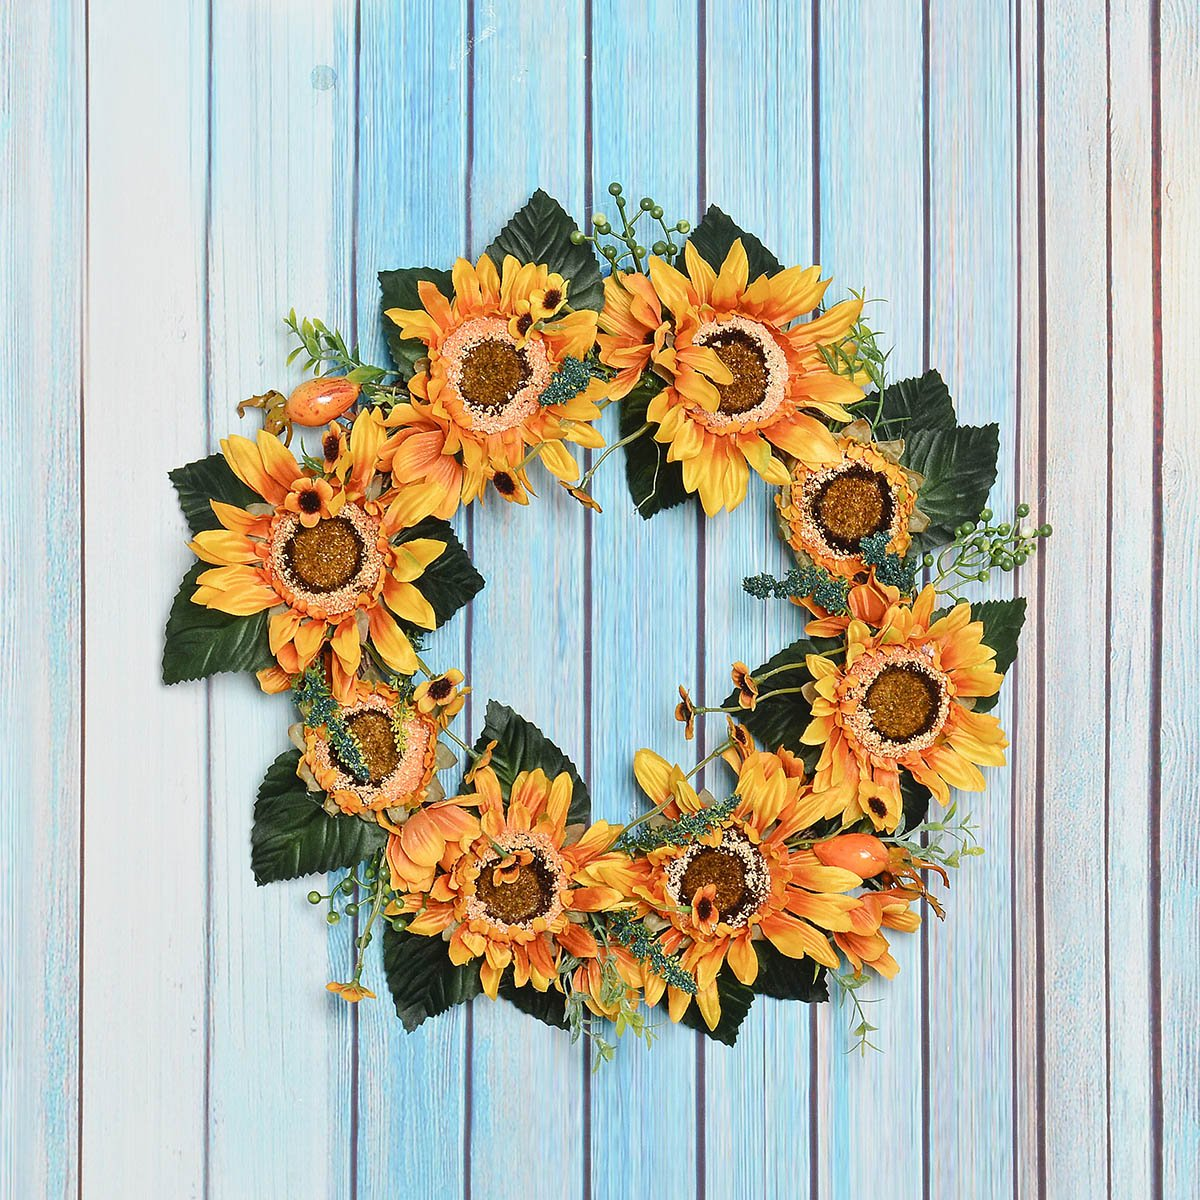 FAVOWREATH 2018 Vitality Series FAVO-W69 Handmade 14 inch White Stamen Sunflowers,Leaf Grapevine Wreath for Summer//Fall Front Door//Wall//Fireplace Wedding Floral Hanger Home Natural Decor